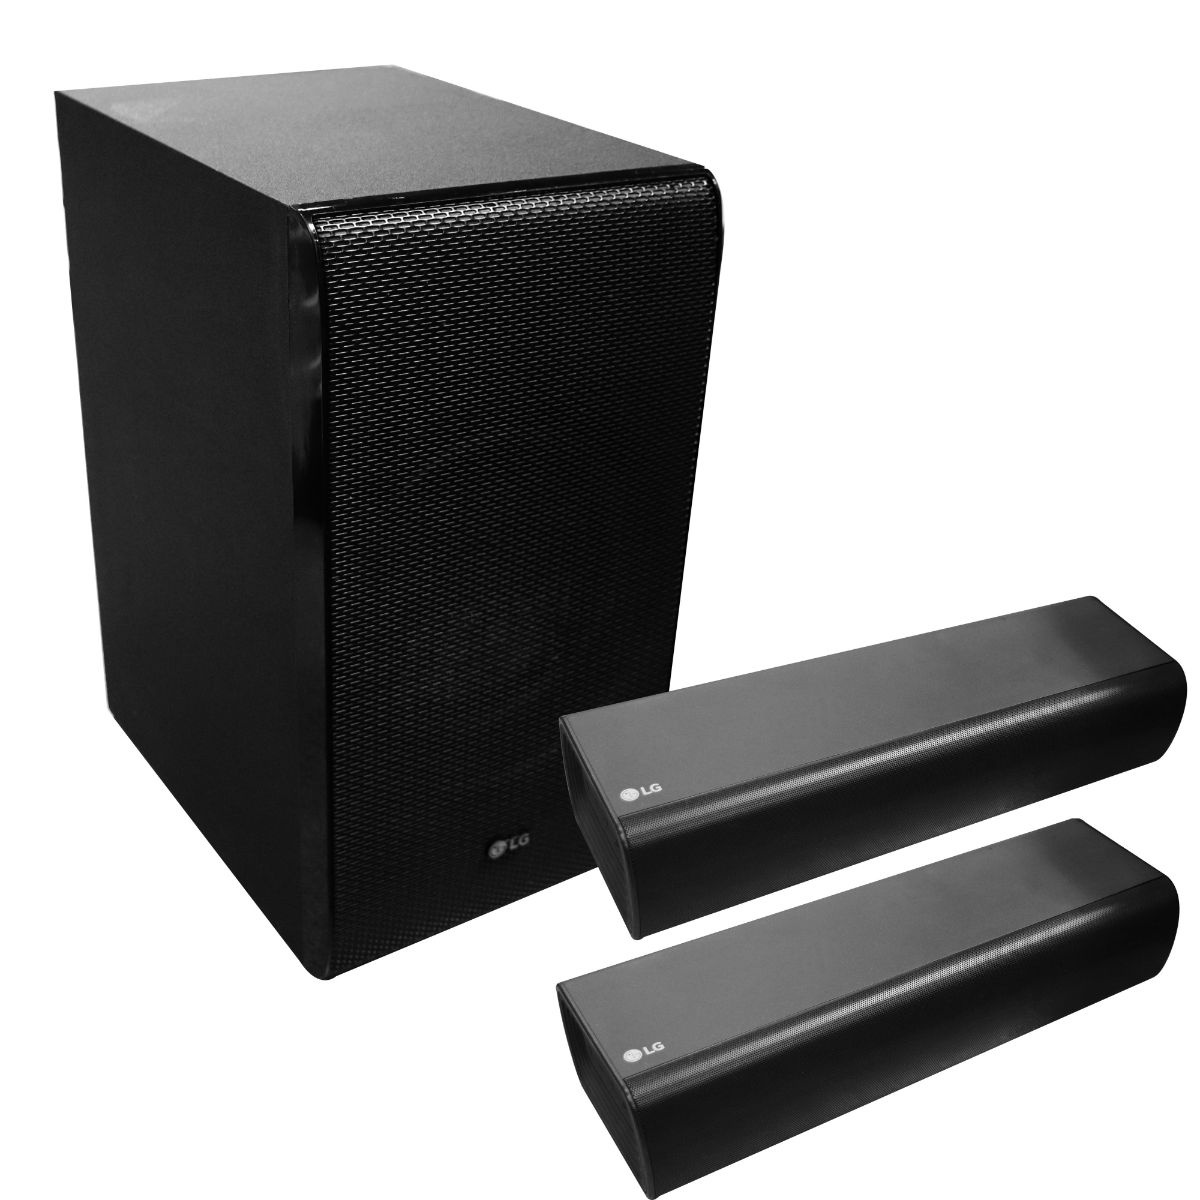 LG SJ7 Dual Speaker Sound Bar Flex with Wireless Subwoofer - Black